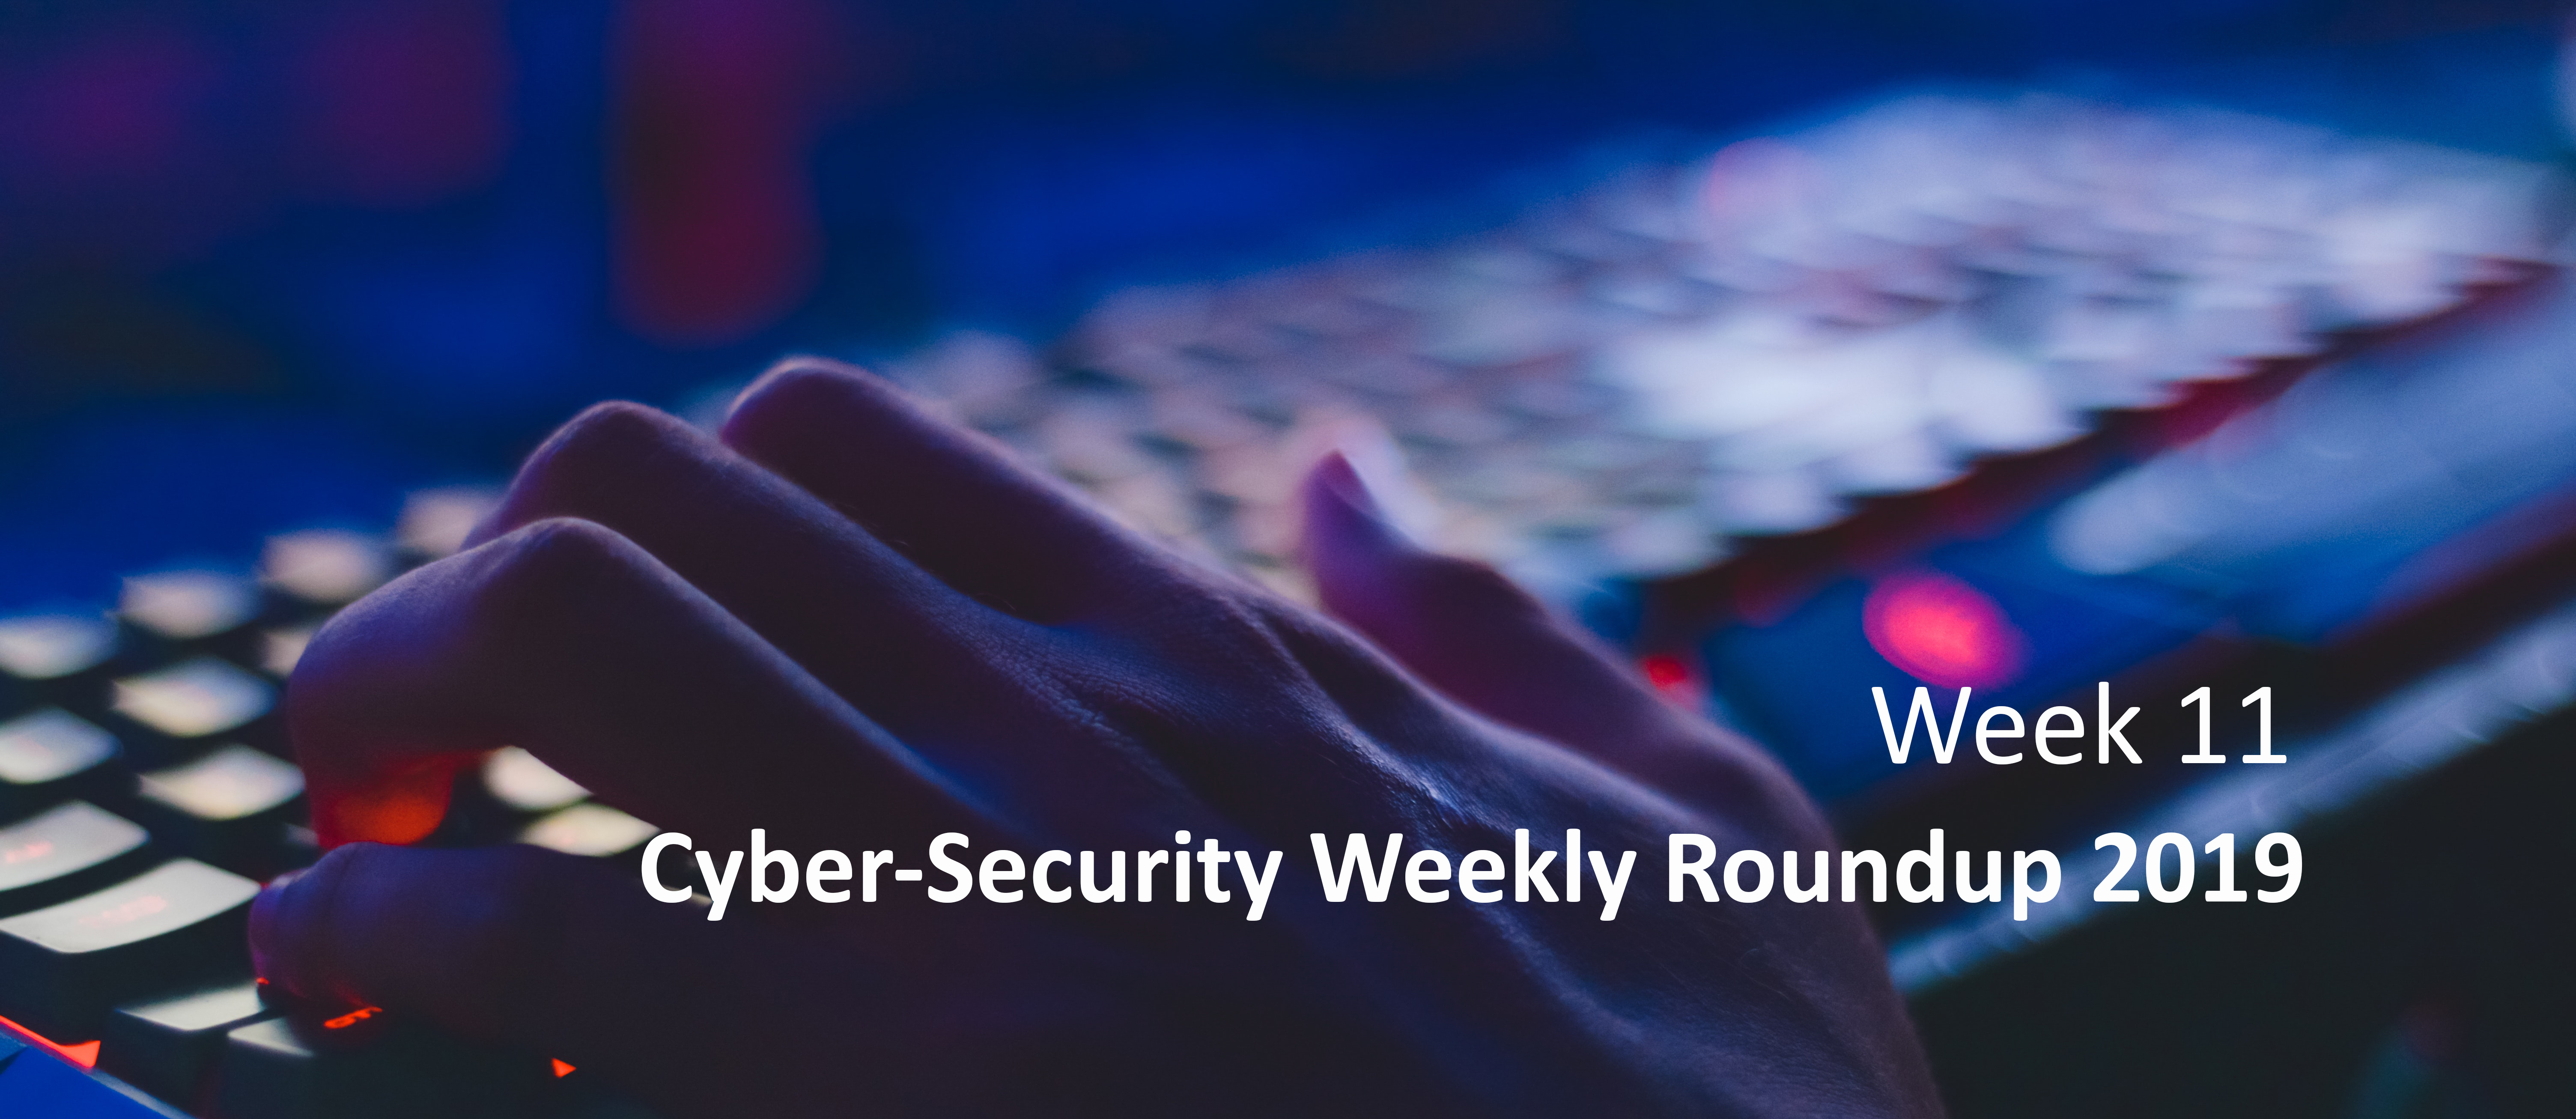 Celerity Cyber Attack Weekly Round Up wk 11